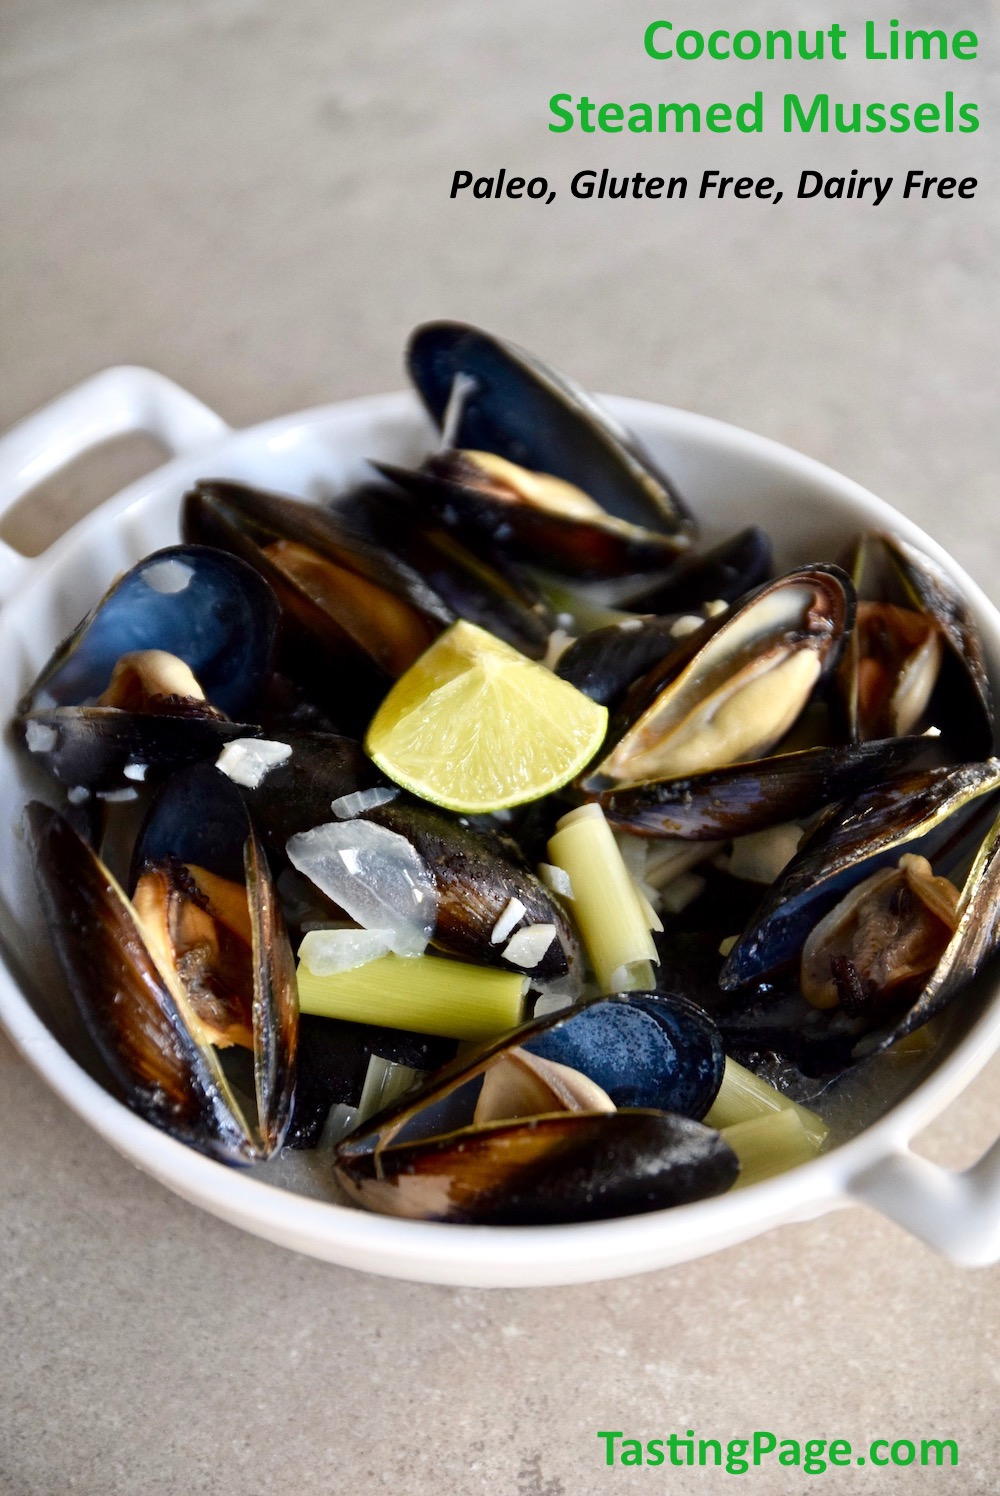 These coconut lime steamed mussels are a great source of selenium, iron and zinc, as well as Vitamins C and B12. So enjoy the healthy Thai flavors that are dairy free, gluten free and paleo friends | TastingPage.com